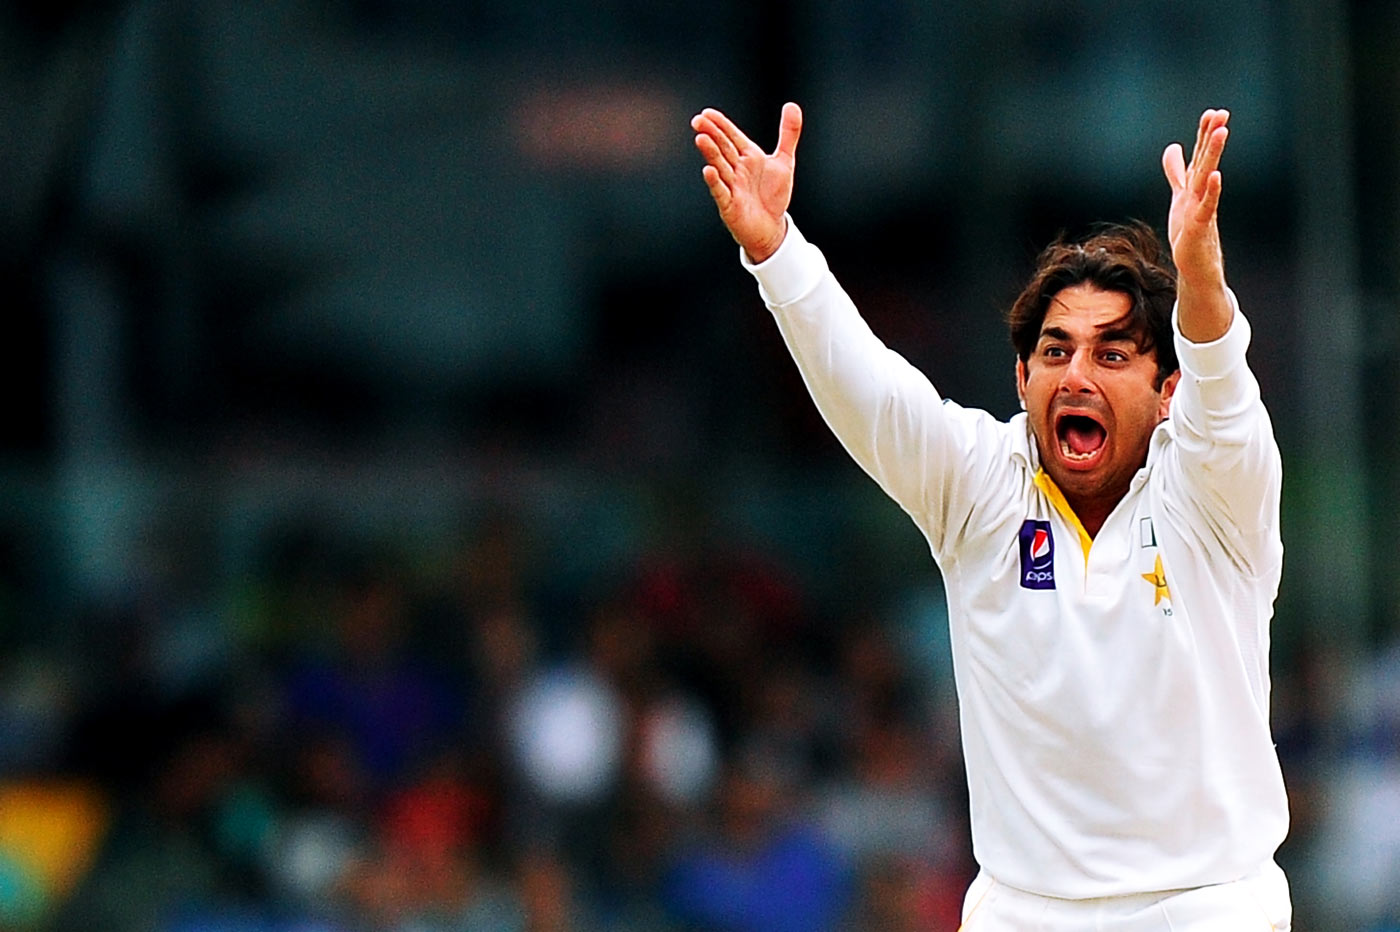 Saeed Ajmal Withdraws from Pakistan World Cup Squad – 28th Dec